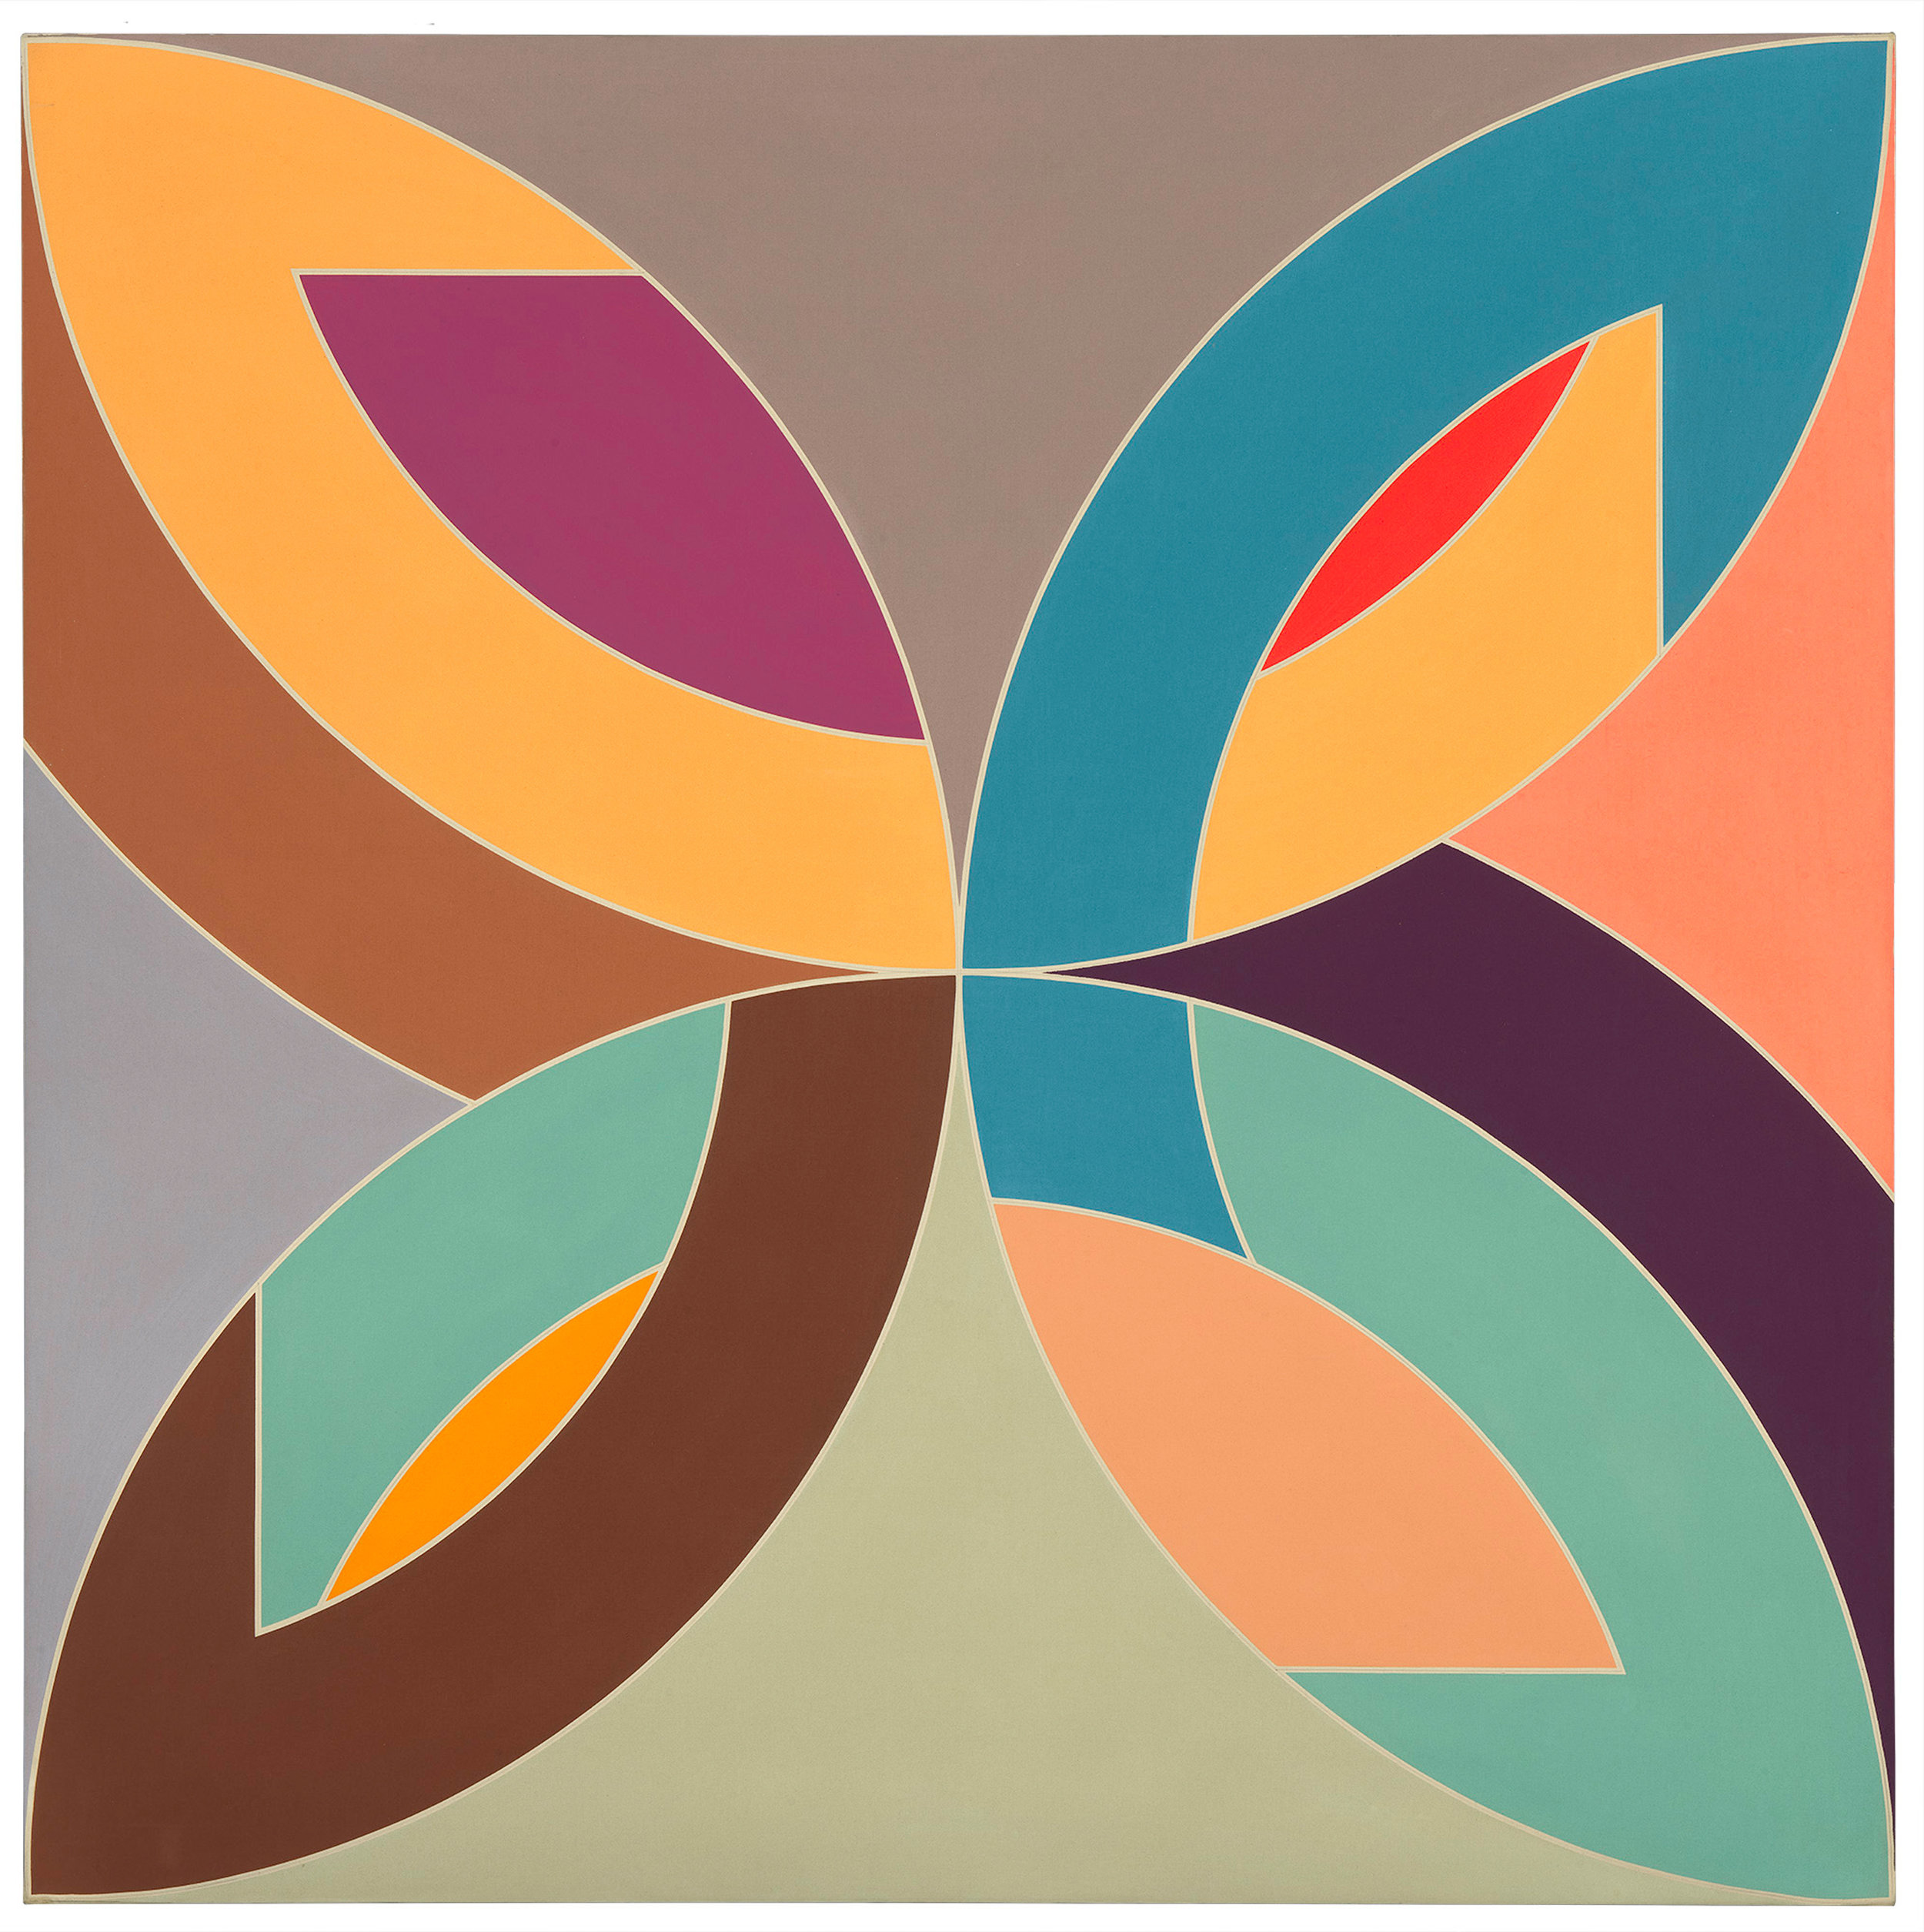 Frank Stella   Flin Flon 1970 synthetic polymer and fluorescent paint on canvas National Gallery of Australia Purchased through the NGA Foundation with the assistance of Terrey and Anne Arcus and Penelope and Harry Seidler 2002 © Frank Stella/ARS, New York/Copyright Agency